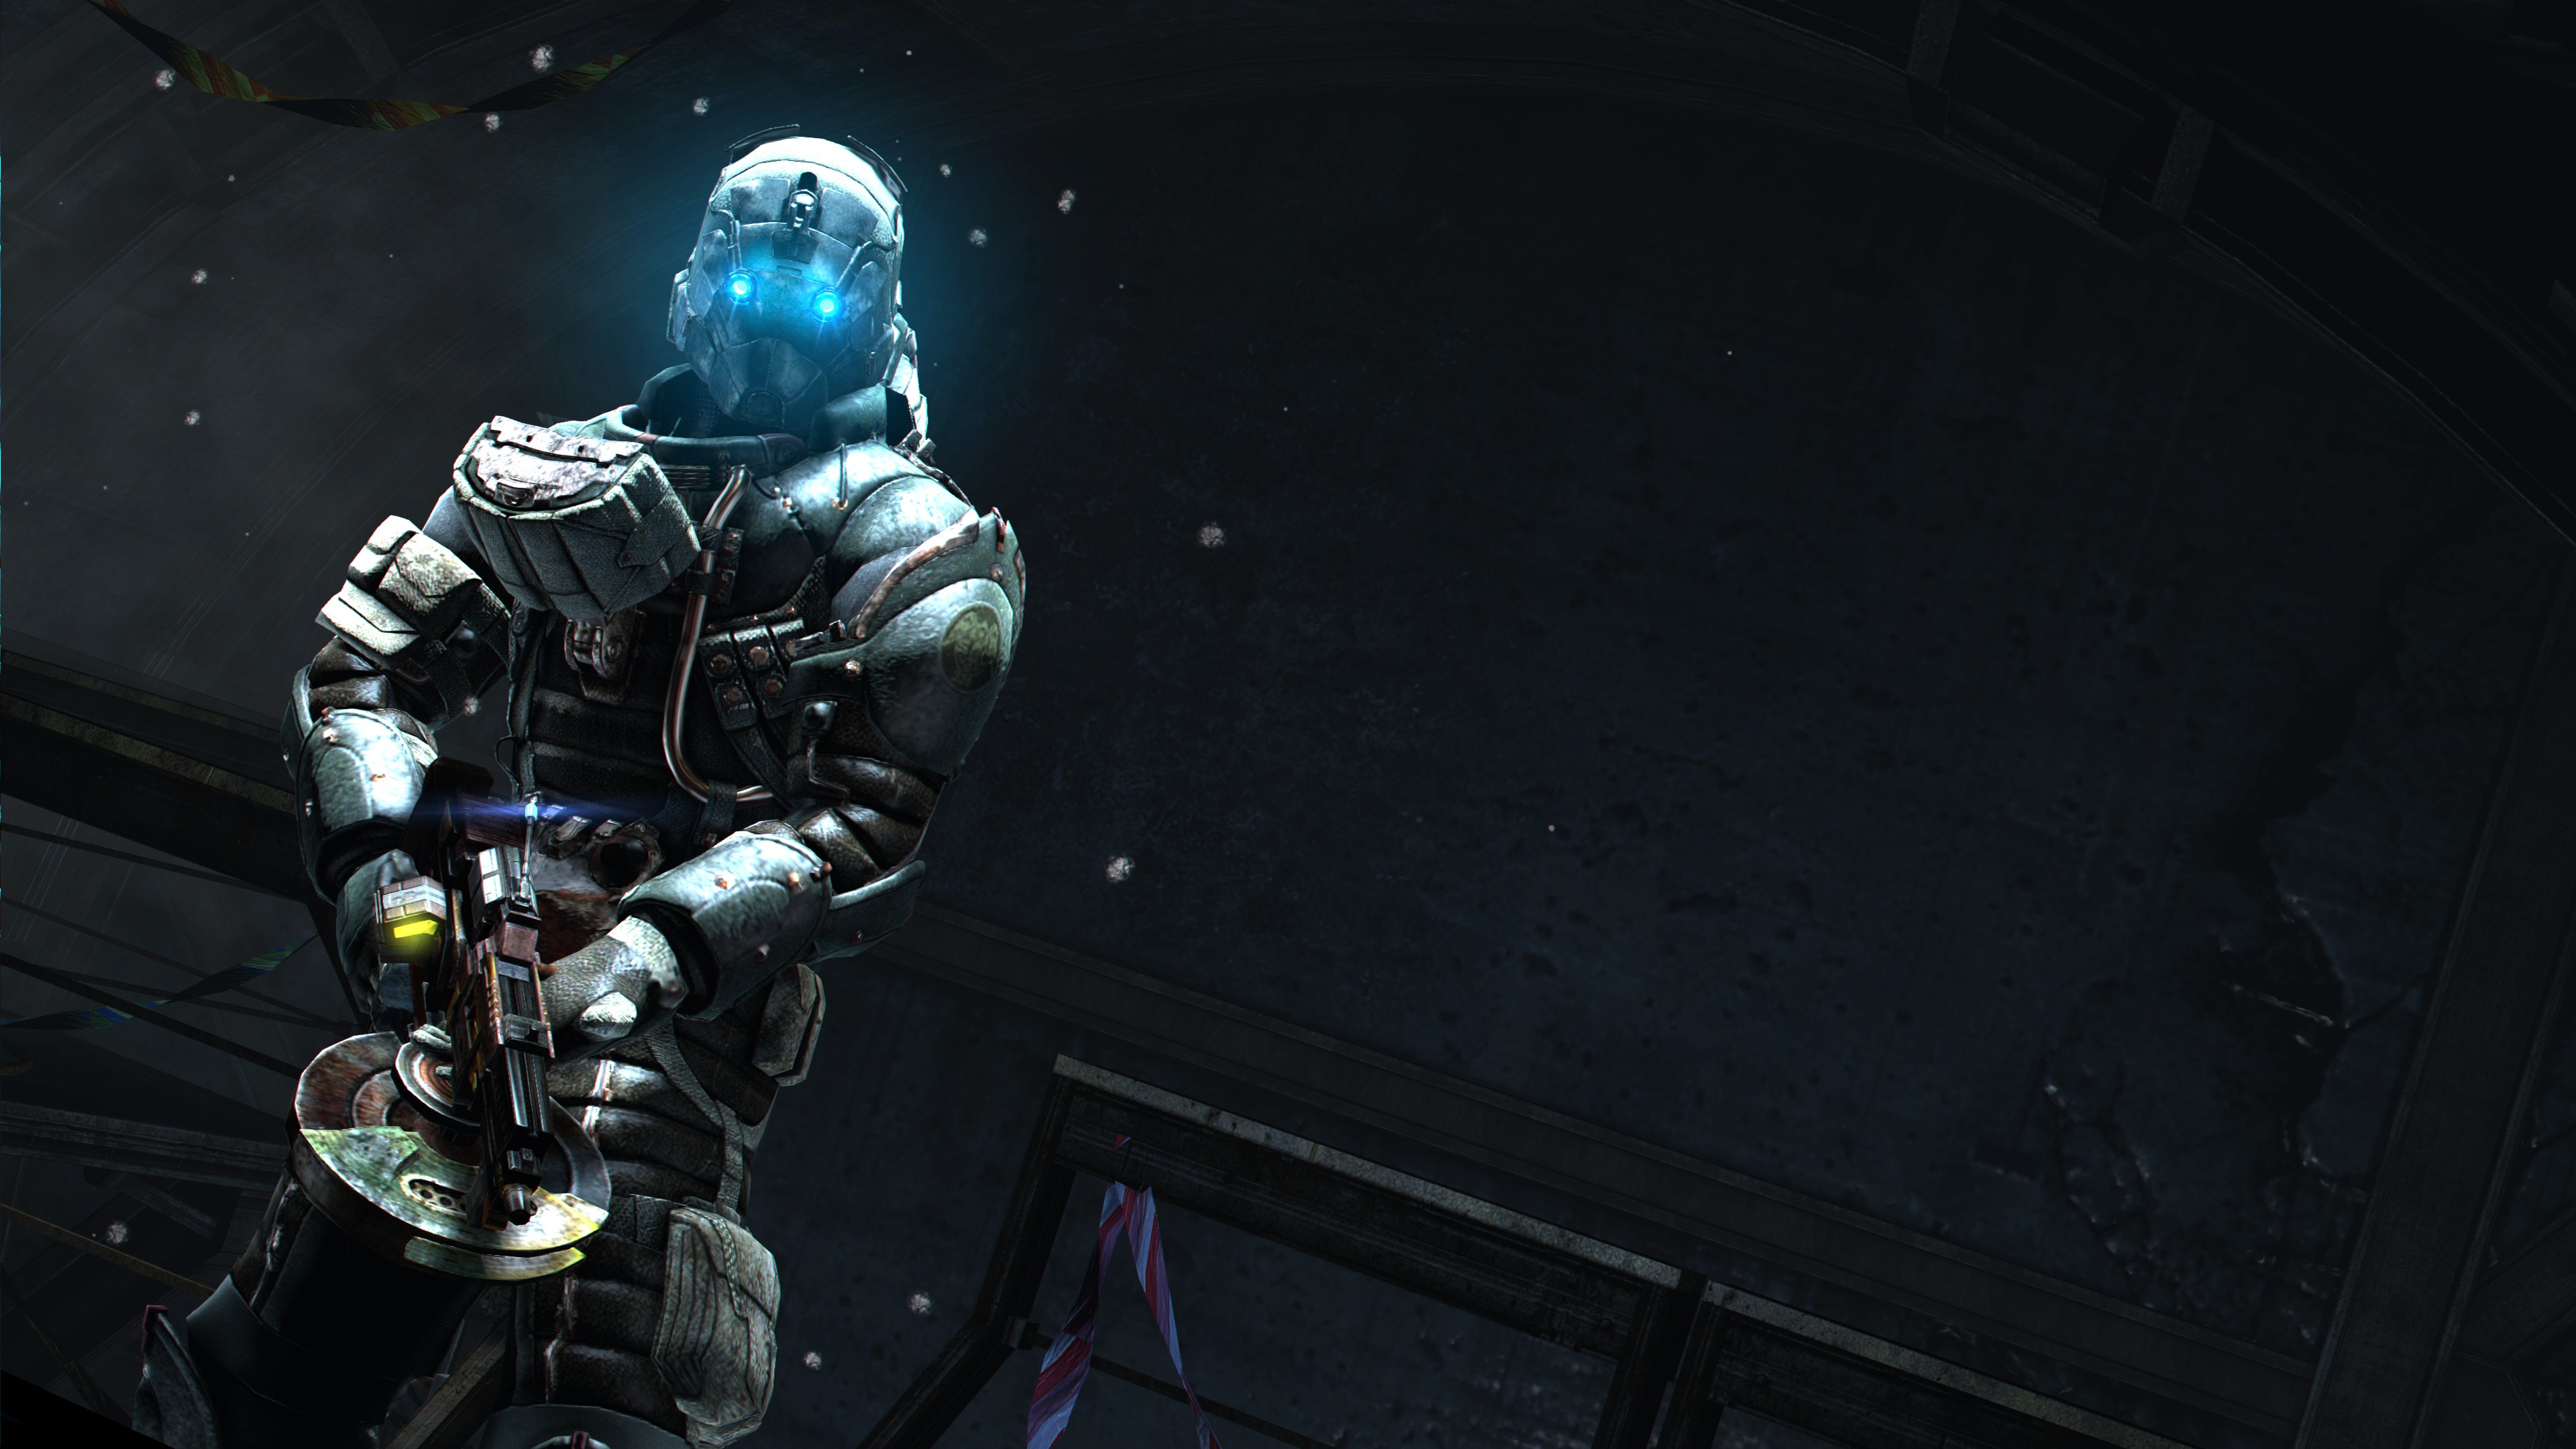 dead space 3 4k ultra hd wallpaper and background image